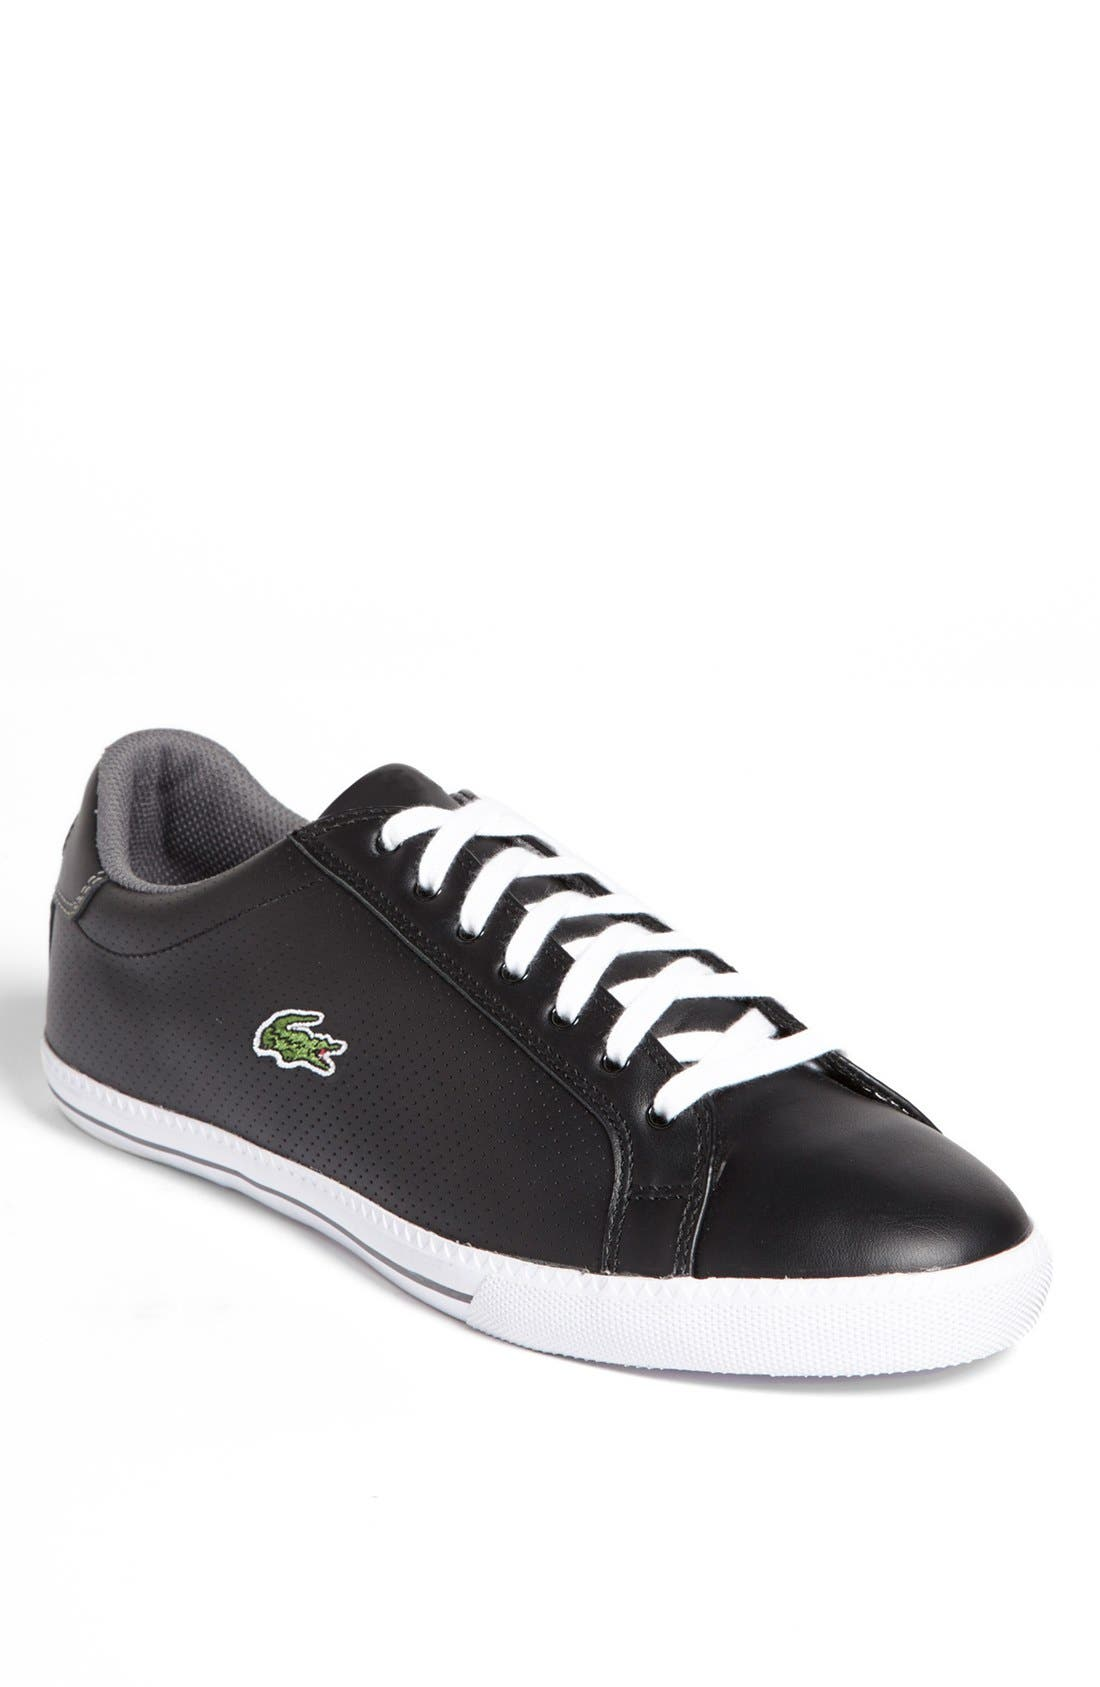 Alternate Image 1 Selected - Lacoste 'Graduate' Sneaker